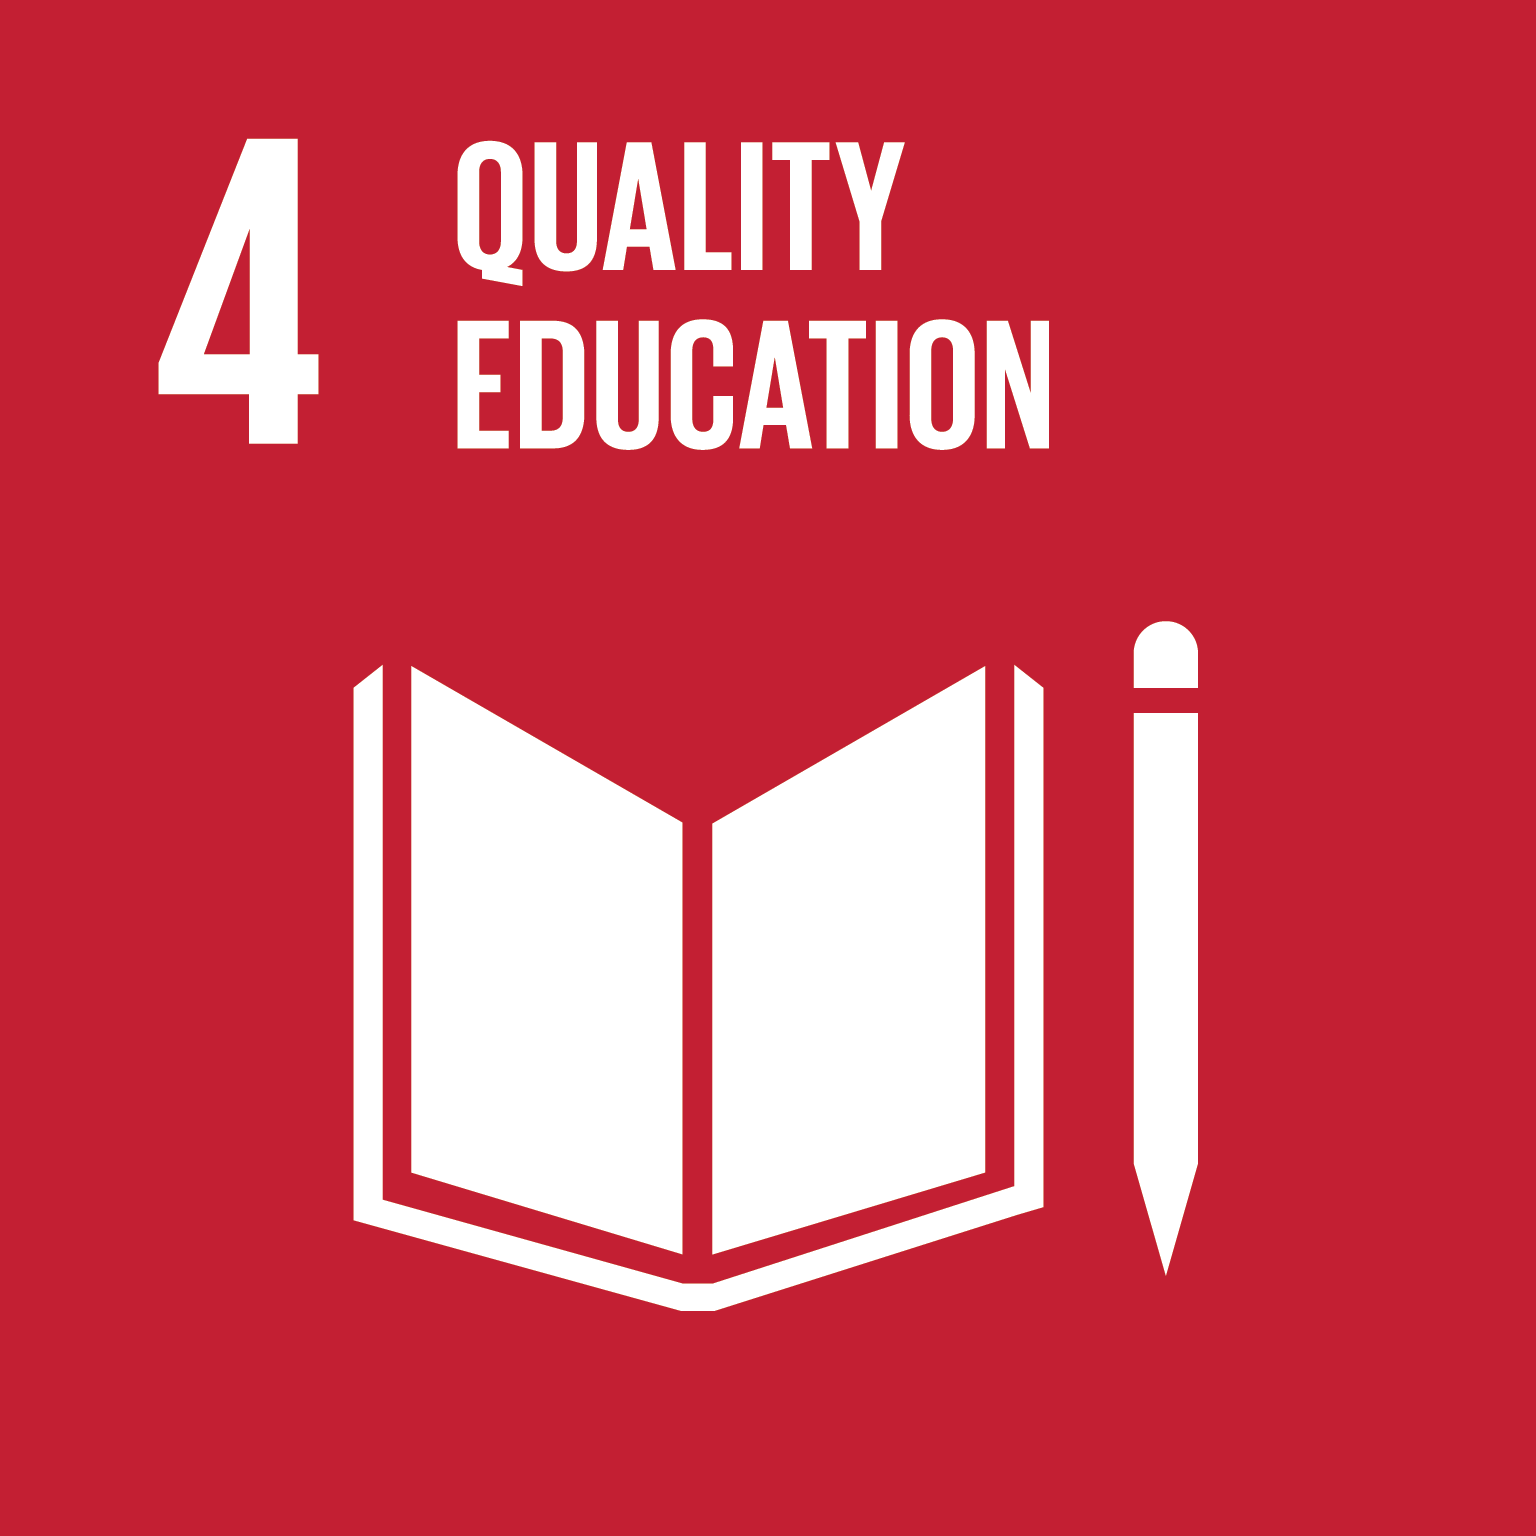 SDG Goal Number 4: Quality Education